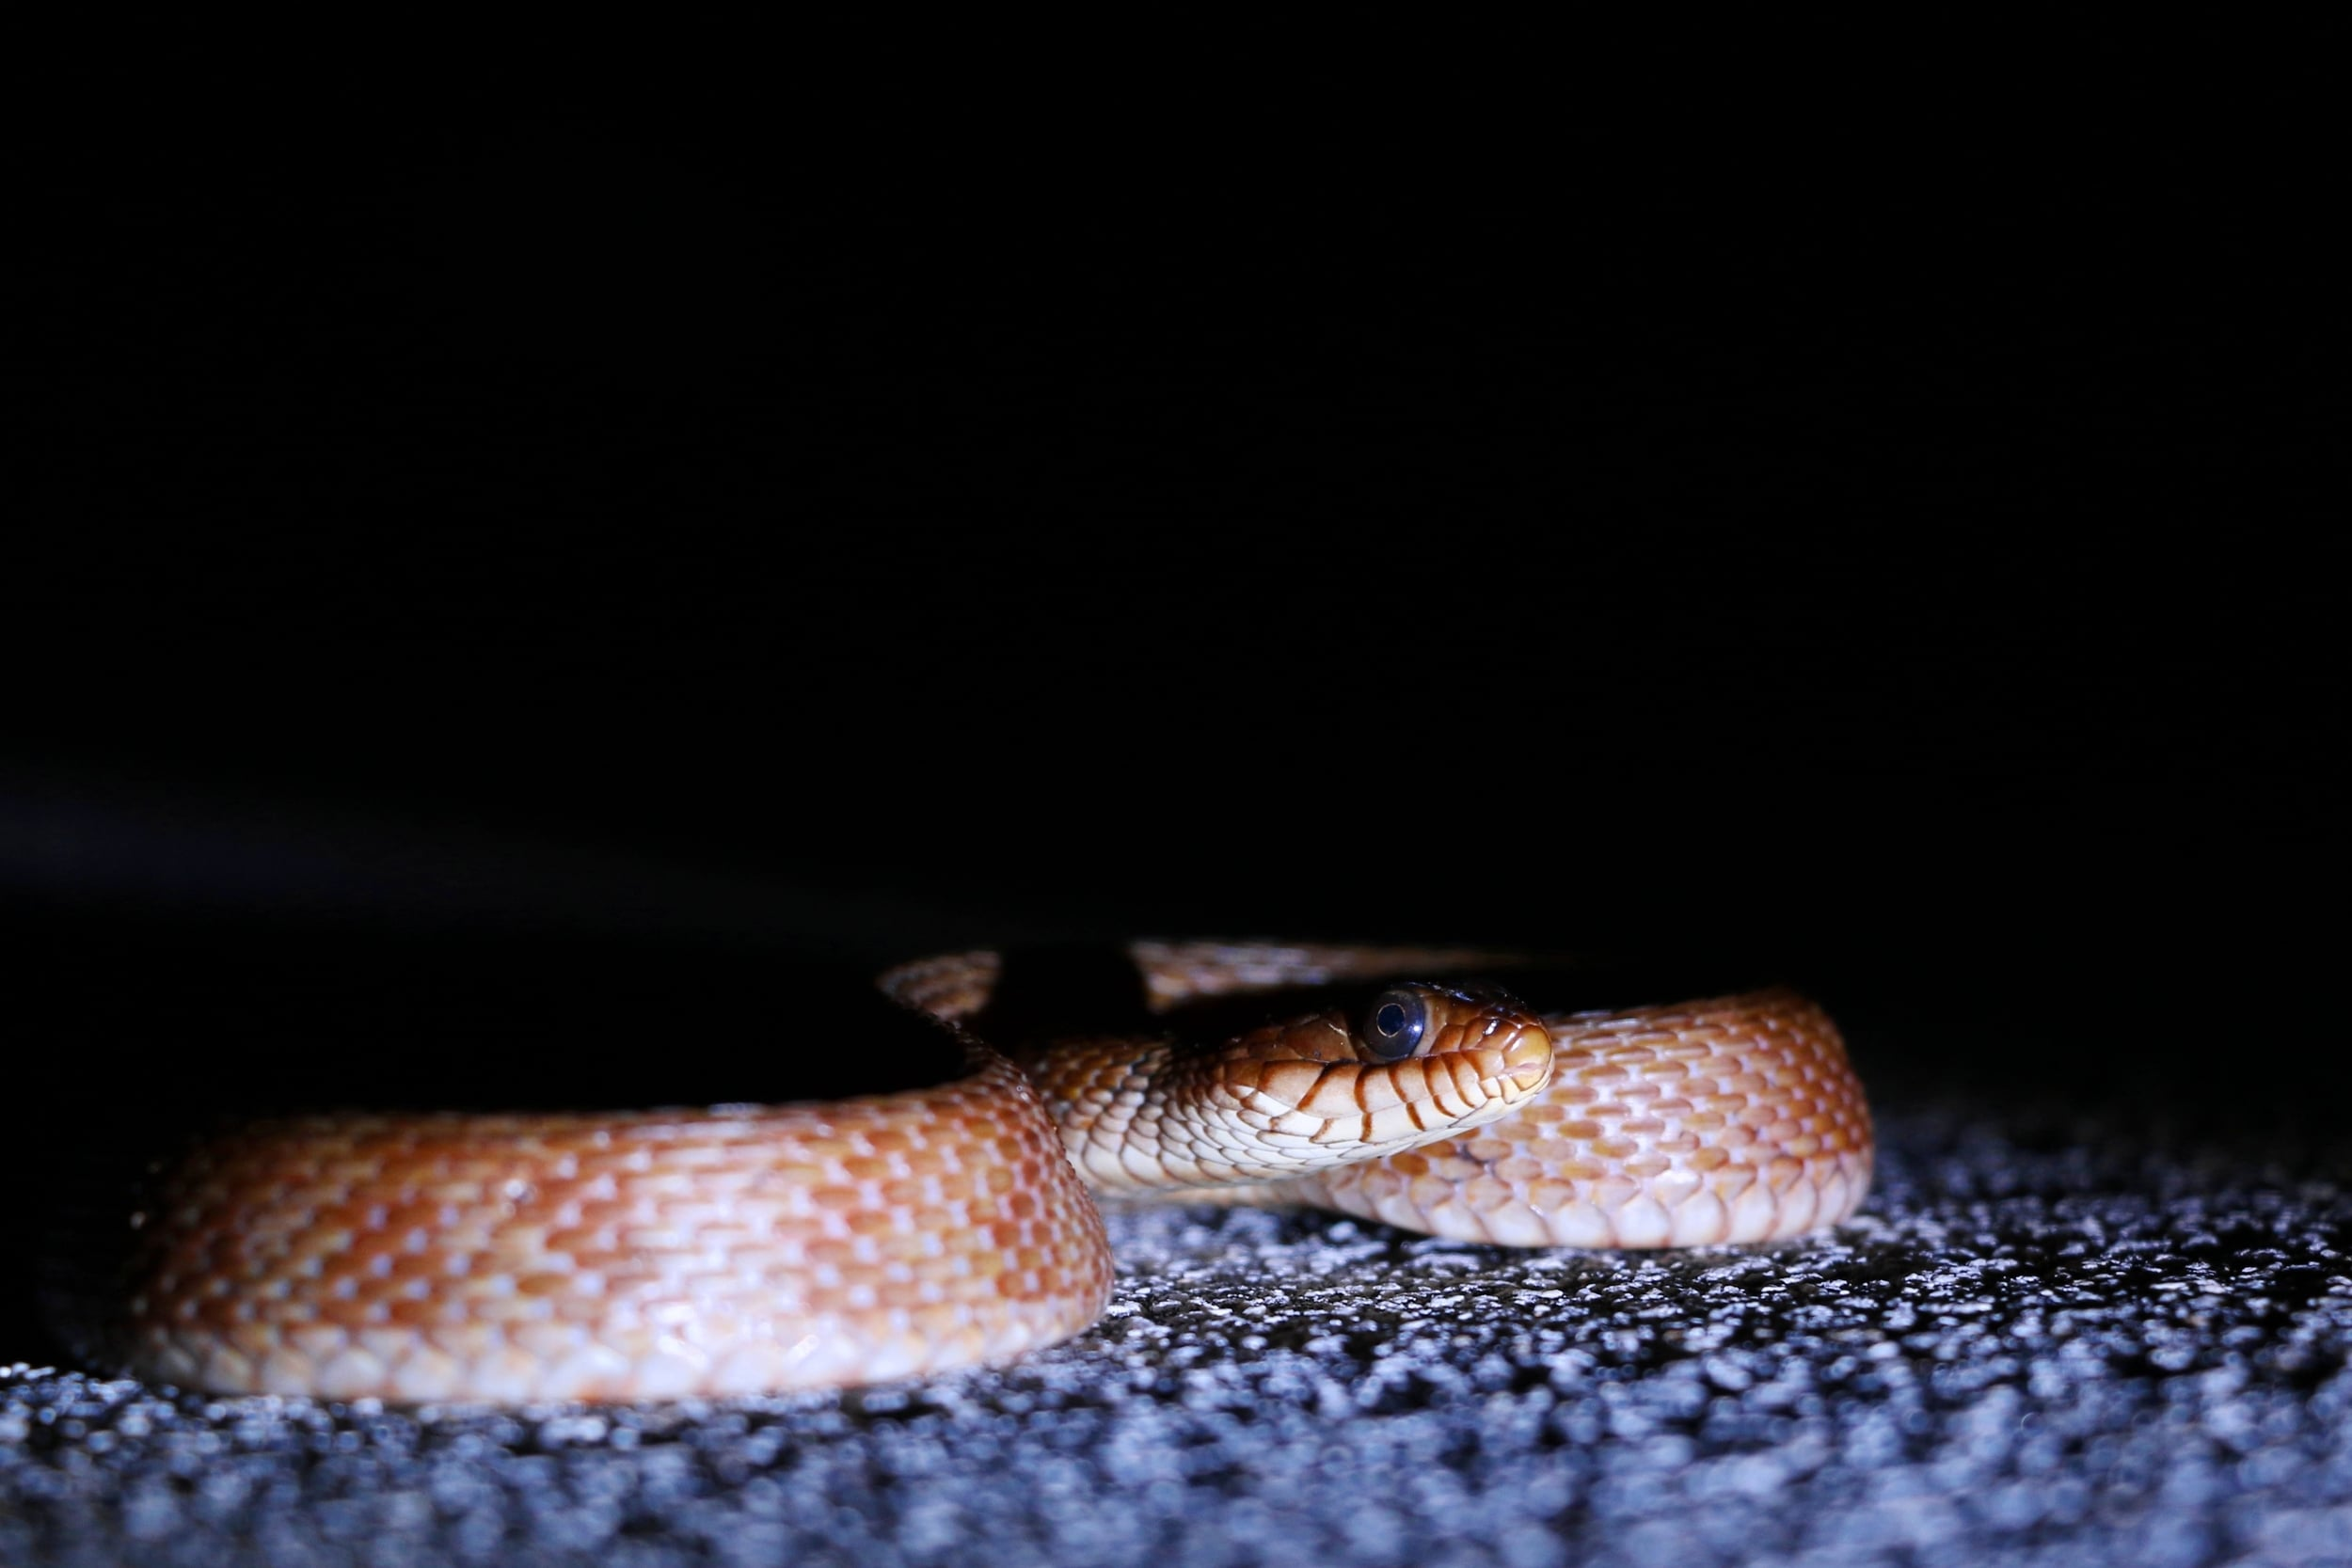 Mangrove Saltmarsh Snake - Here was a different colored individual. I regret not getting better photos of others.